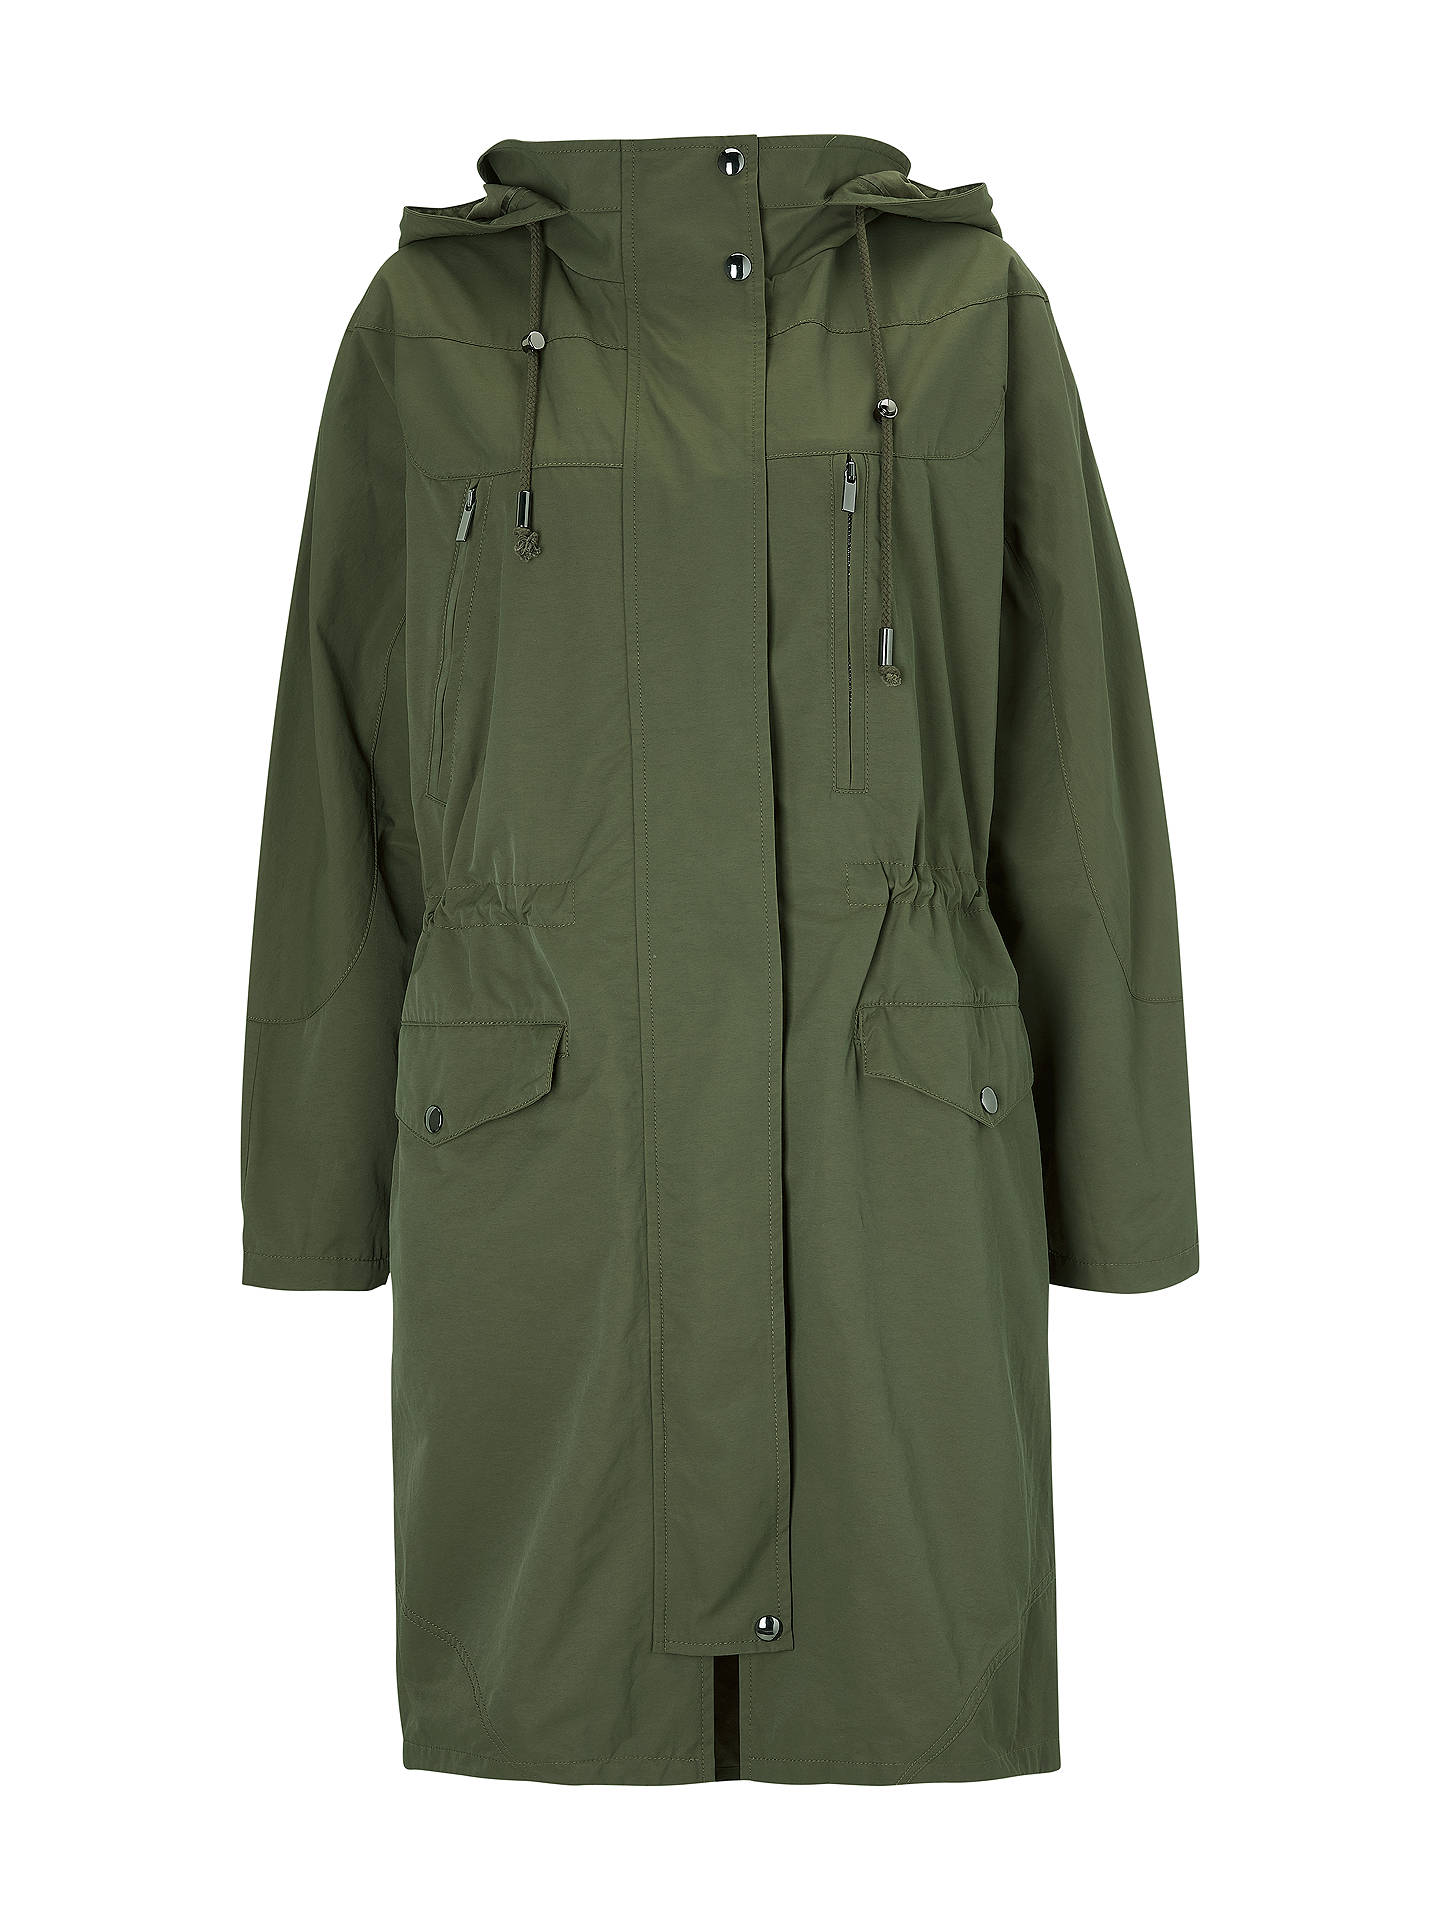 BuyGreat Plains High Neck Long Parka Coat, Green Smoke, XS Online at johnlewis.com